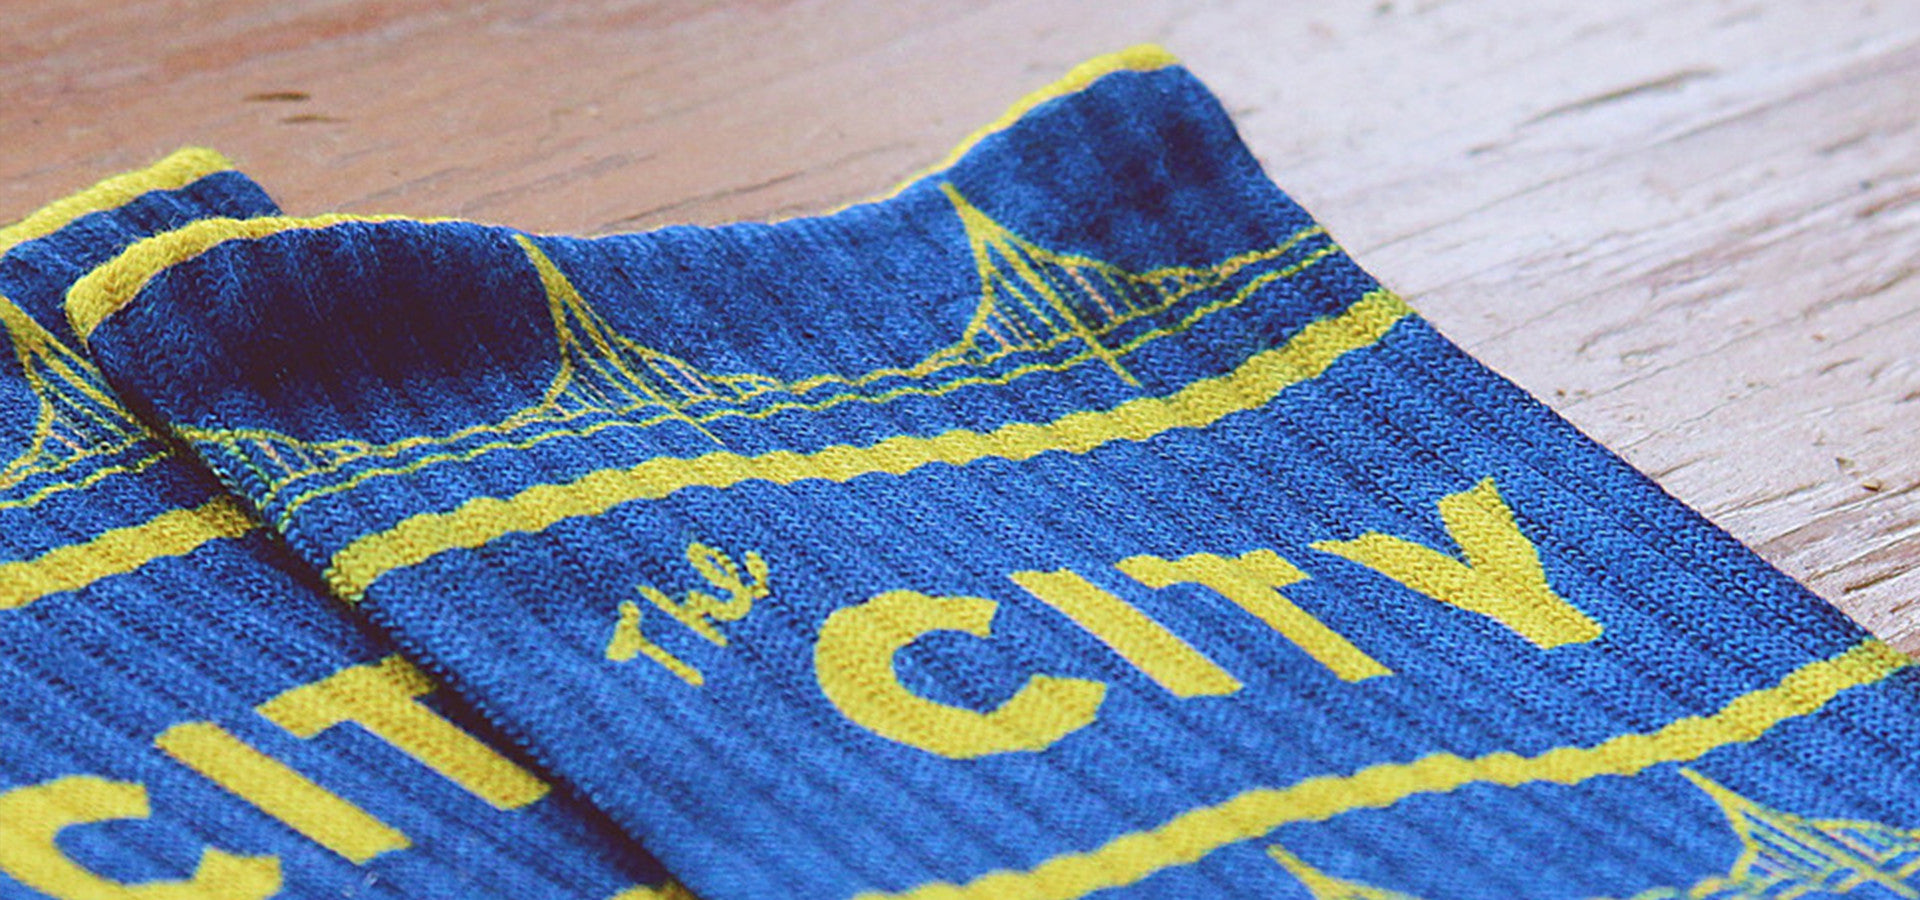 GOLDEN STATE WARRIORS 'THE CITY' CUSTOM SOCKS SOCKTIMUS PRIME